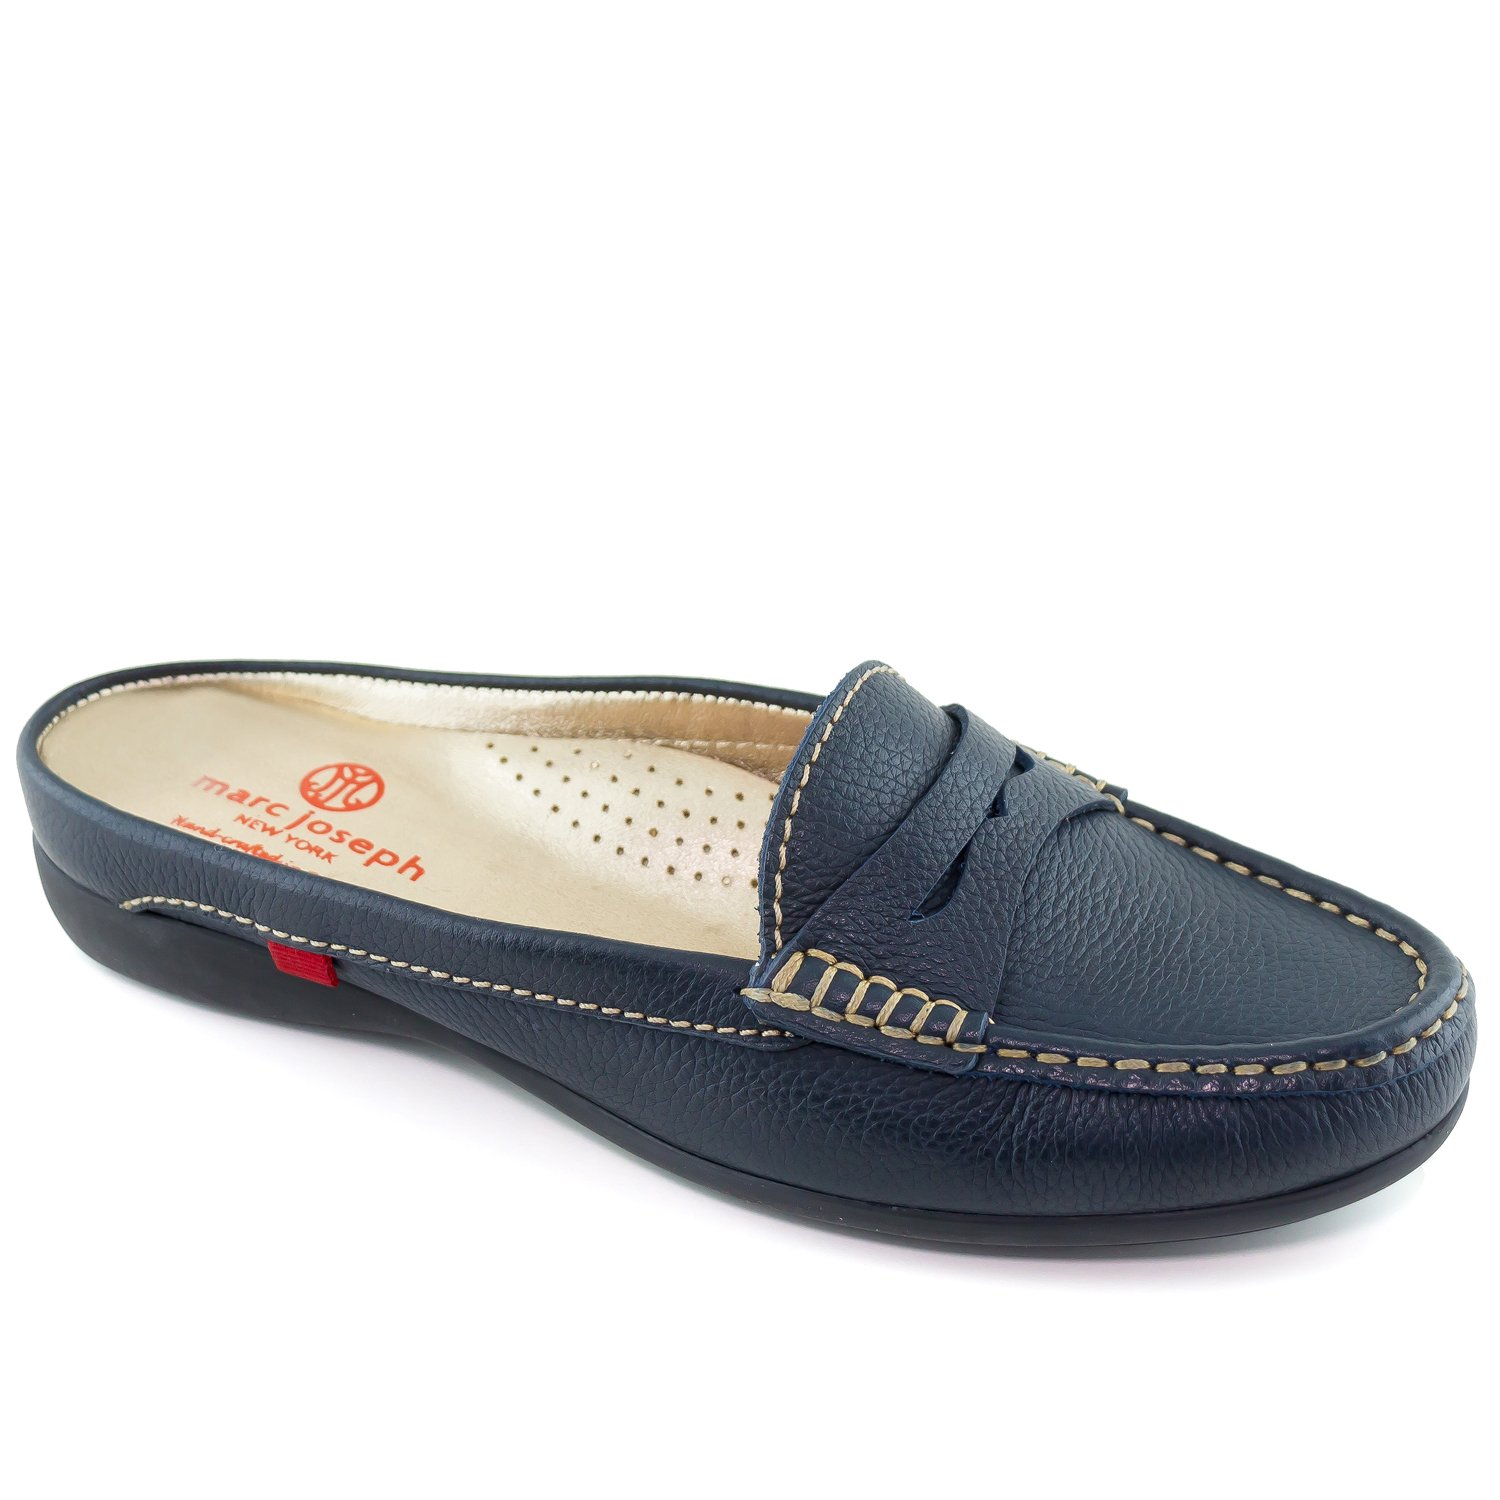 Marc Joseph New York Women's Union Mule Navy Grainy Slip On 7 by Marc Joseph New York (Image #1)